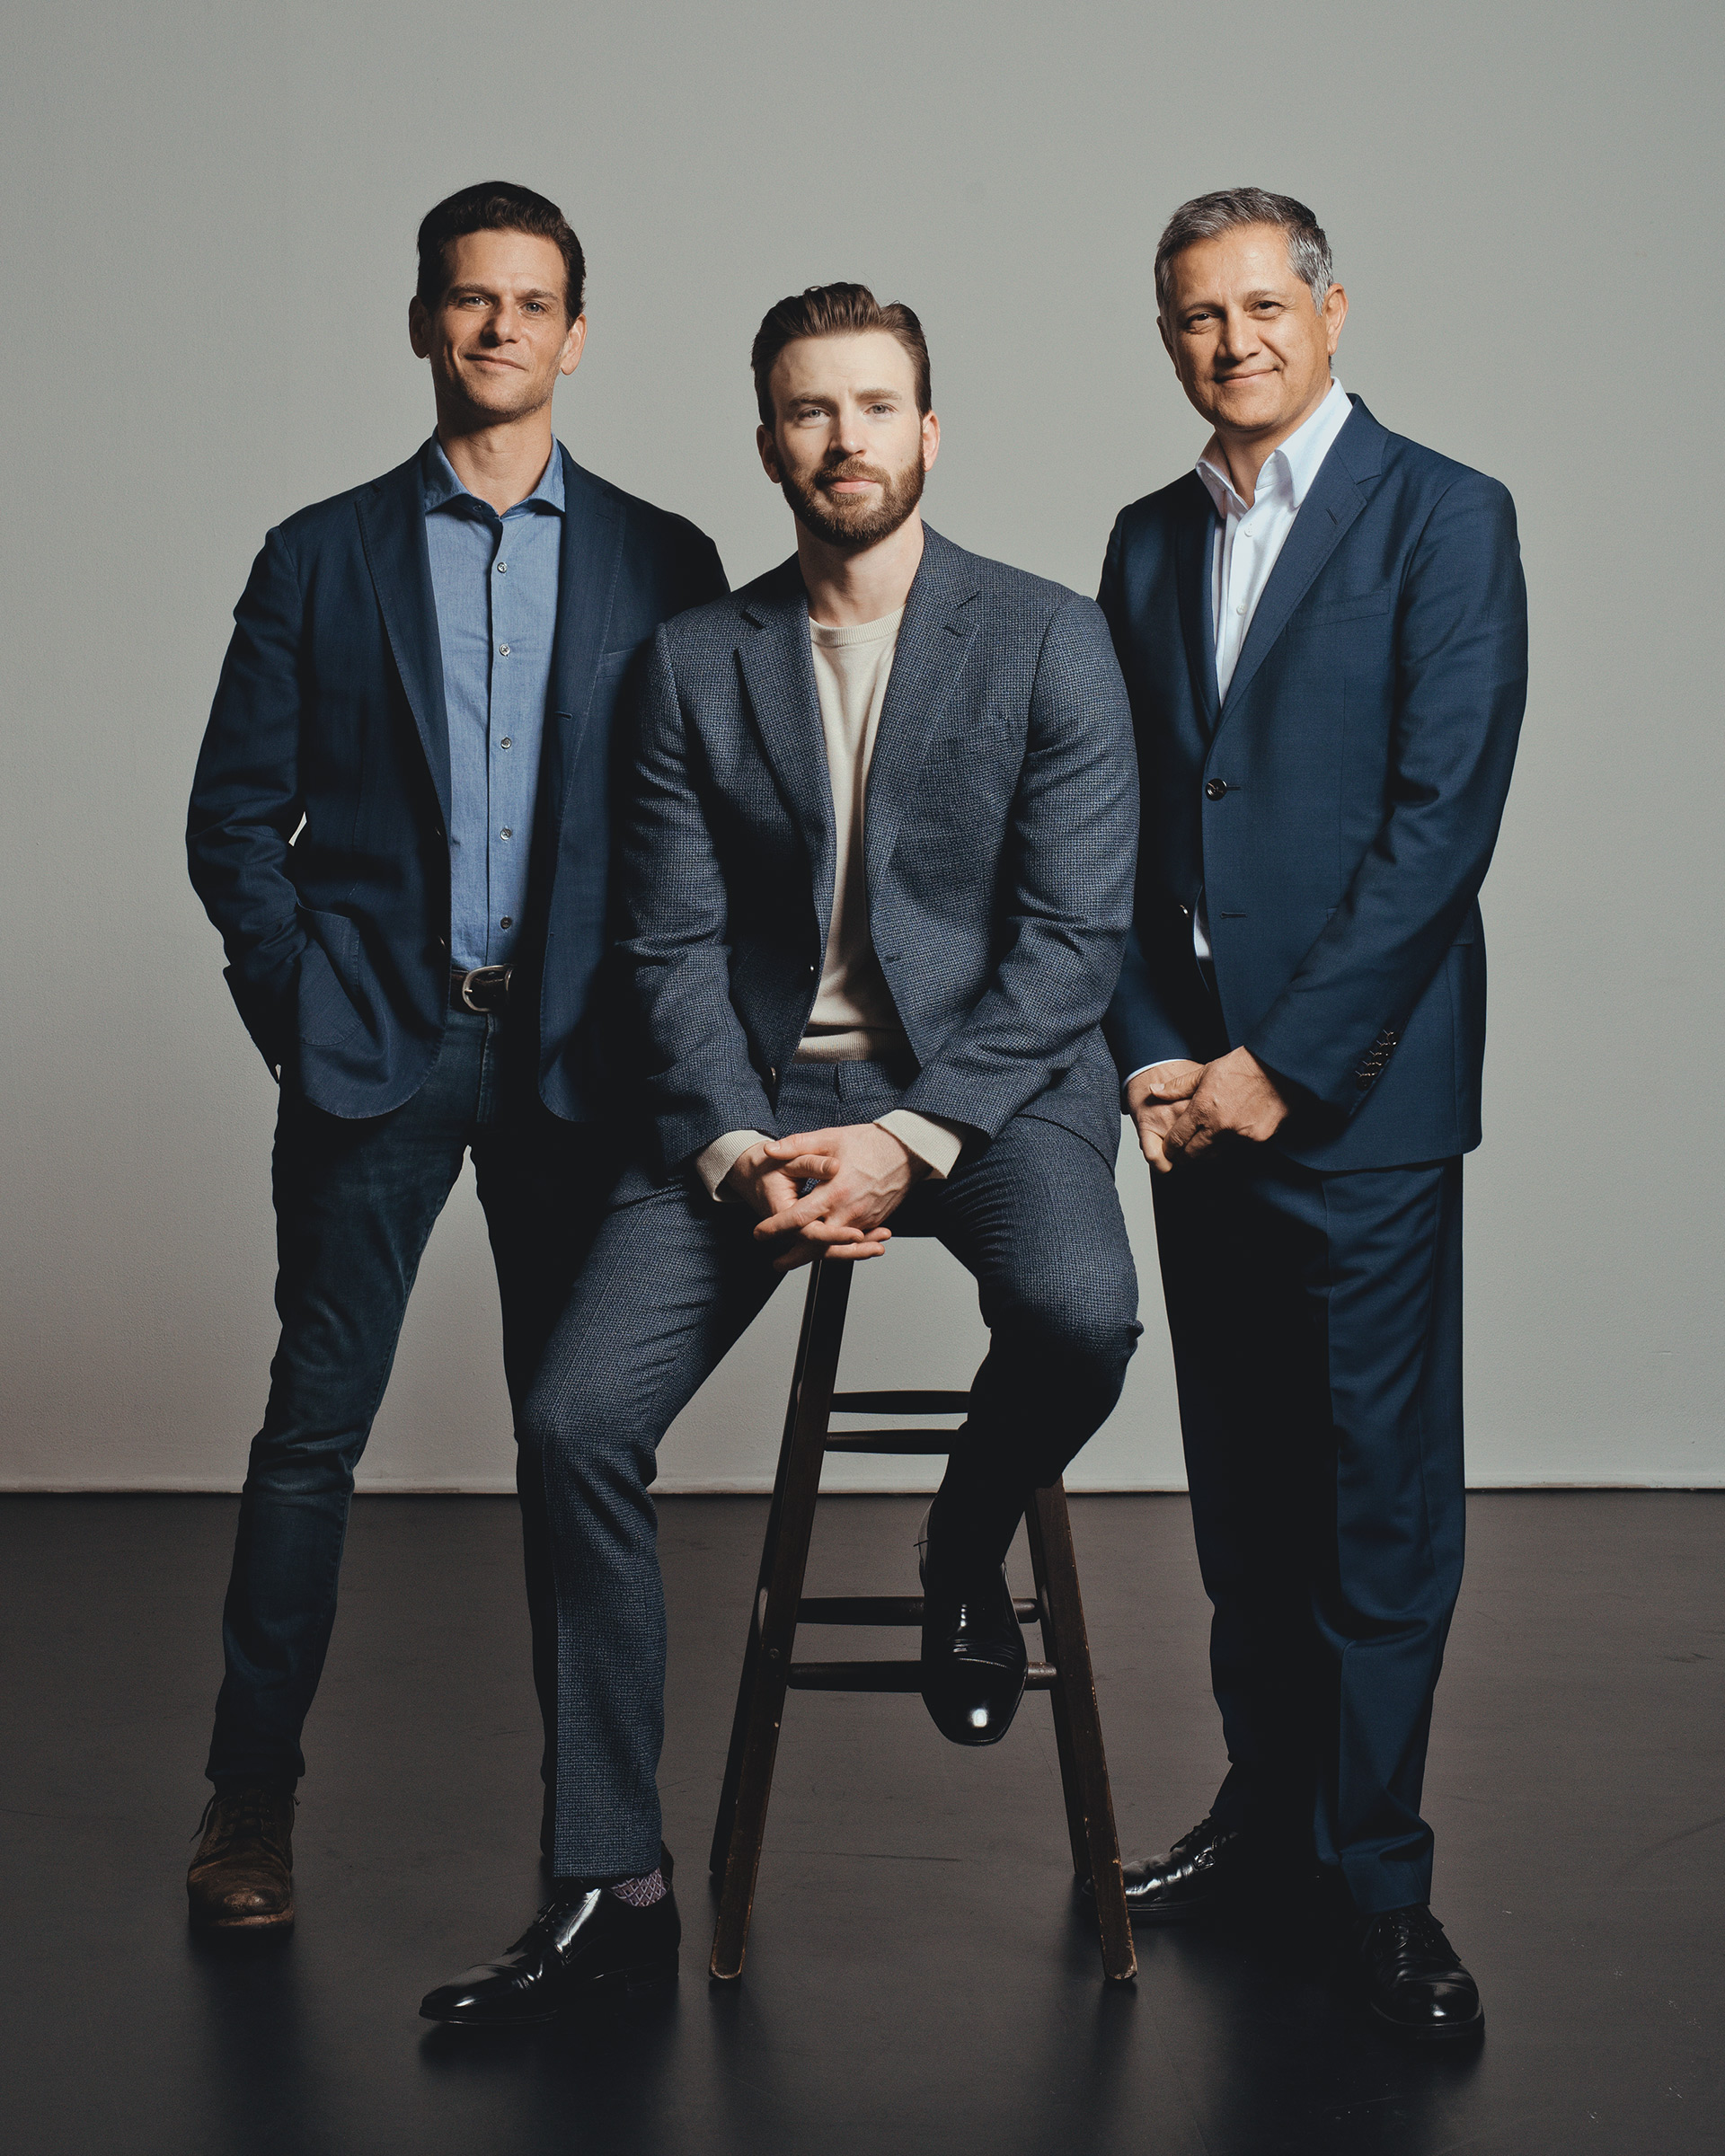 Mark Kassen, Chris Evans and Joe Kiani photographed in Los Angeles, CA on March 11, 2020.